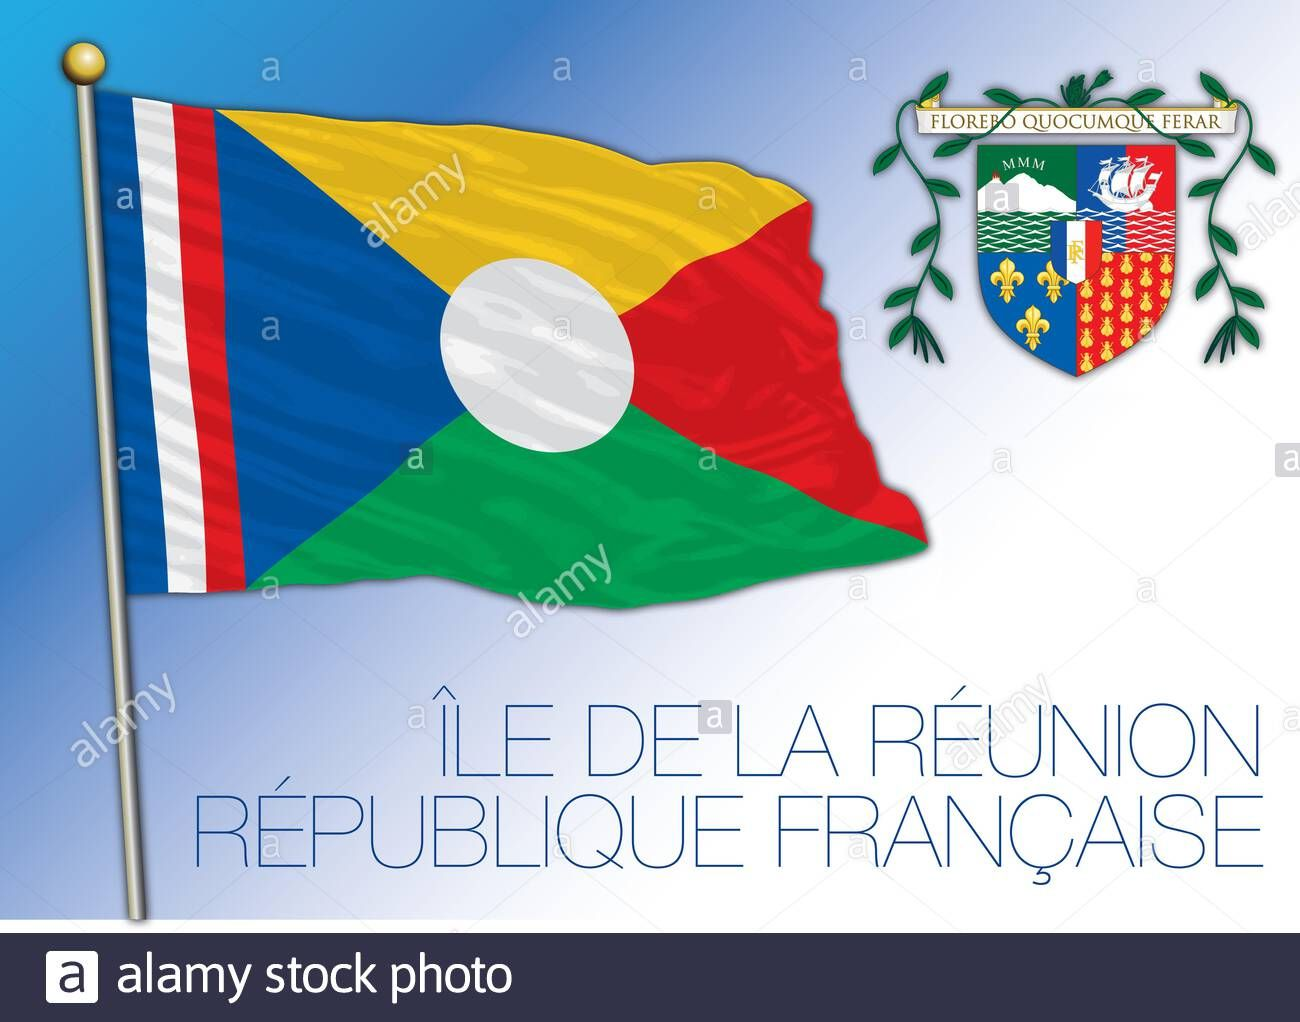 Download This Stock Vector Reunion Unofficial National Flag And Coat Of Arms French Territory Vector Illustration 2ba97wc From Alamy S Library Of M En 2020 Banderas